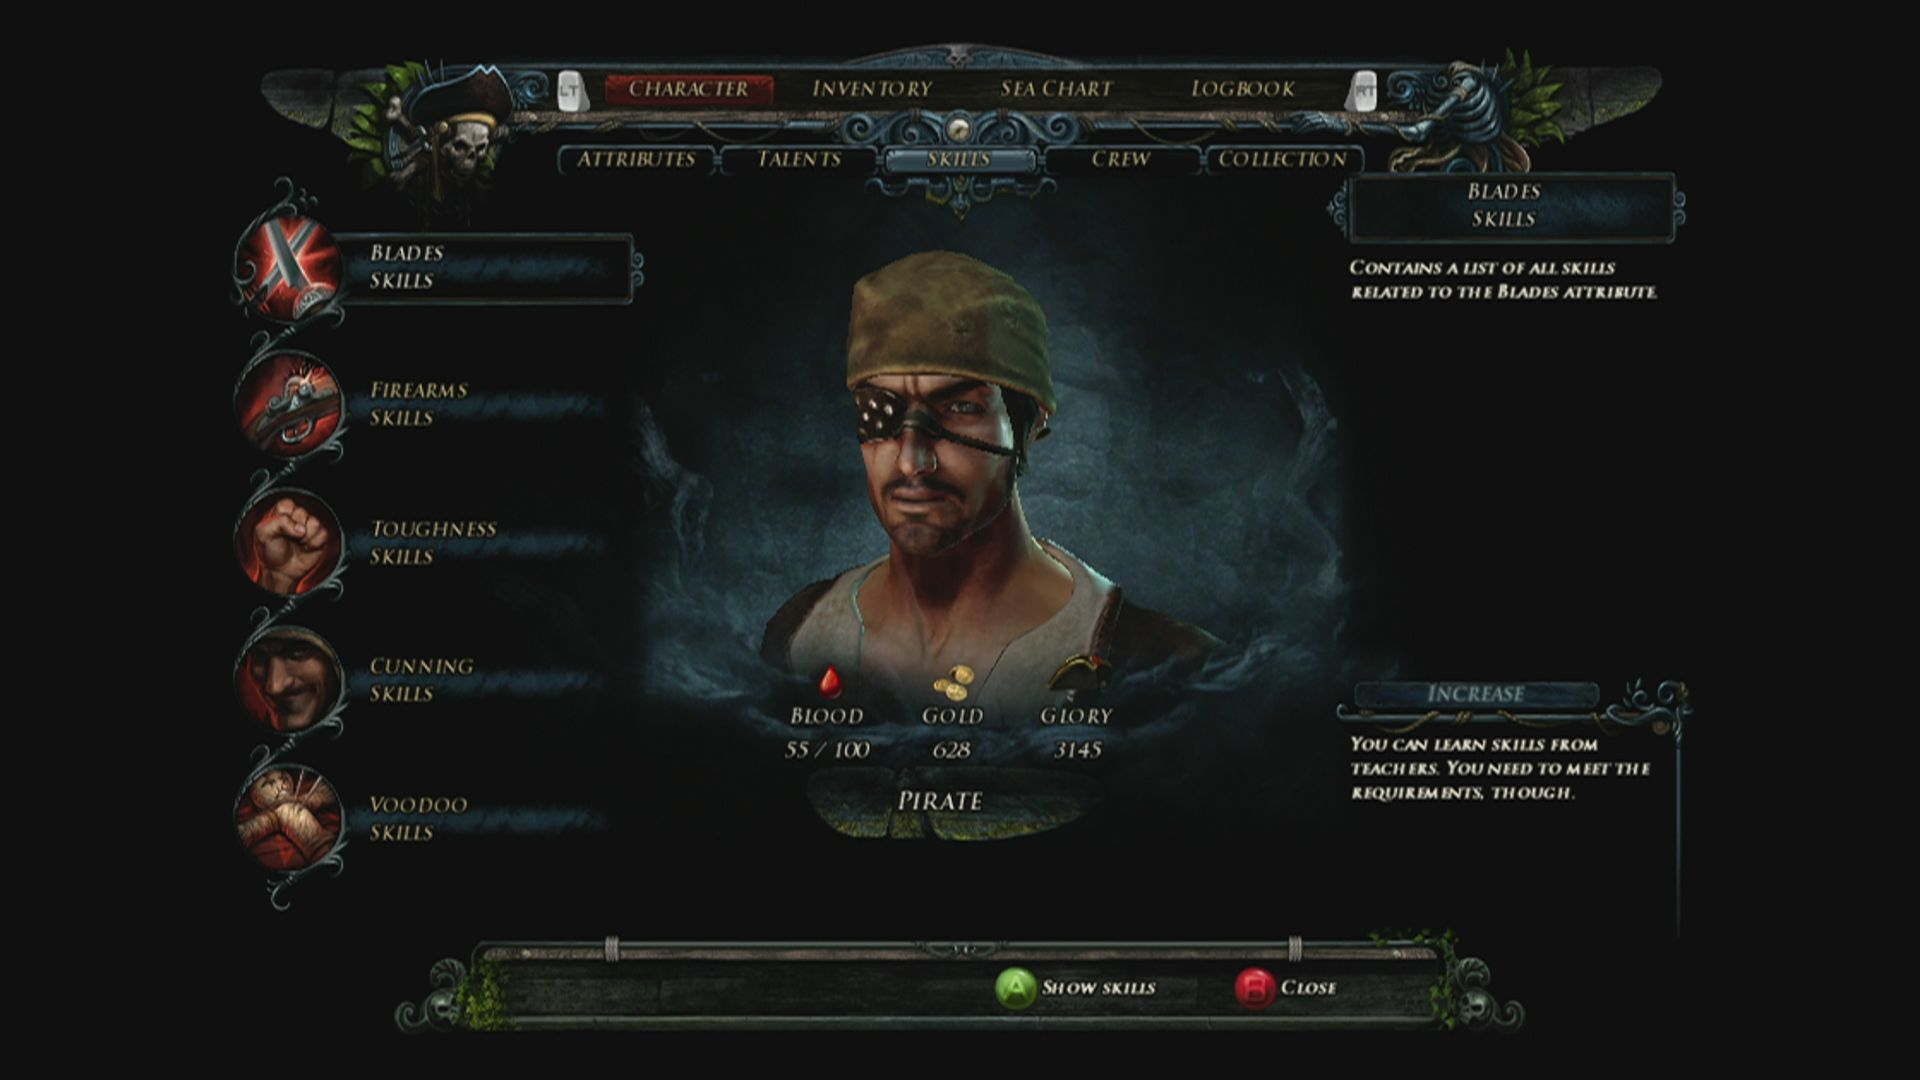 Risen 2: Dark Waters Xbox 360 Skill screen